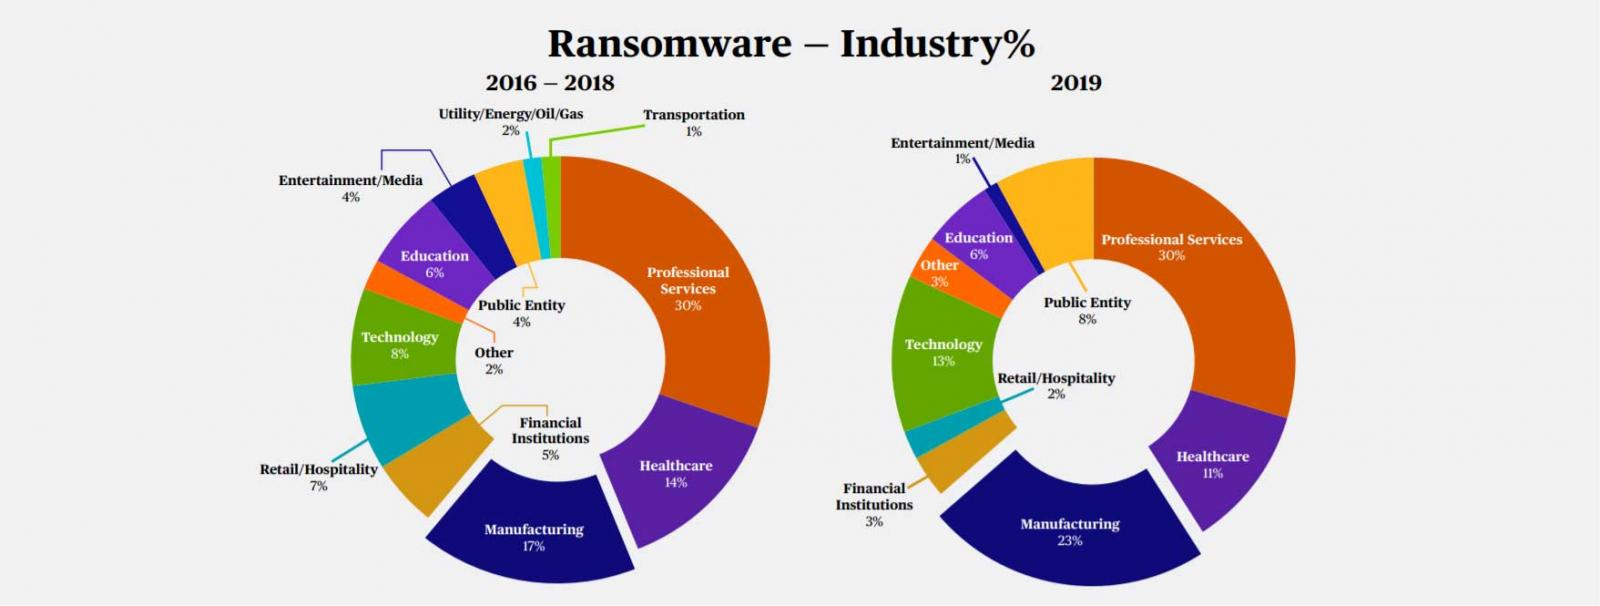 Ransomware targets per industry